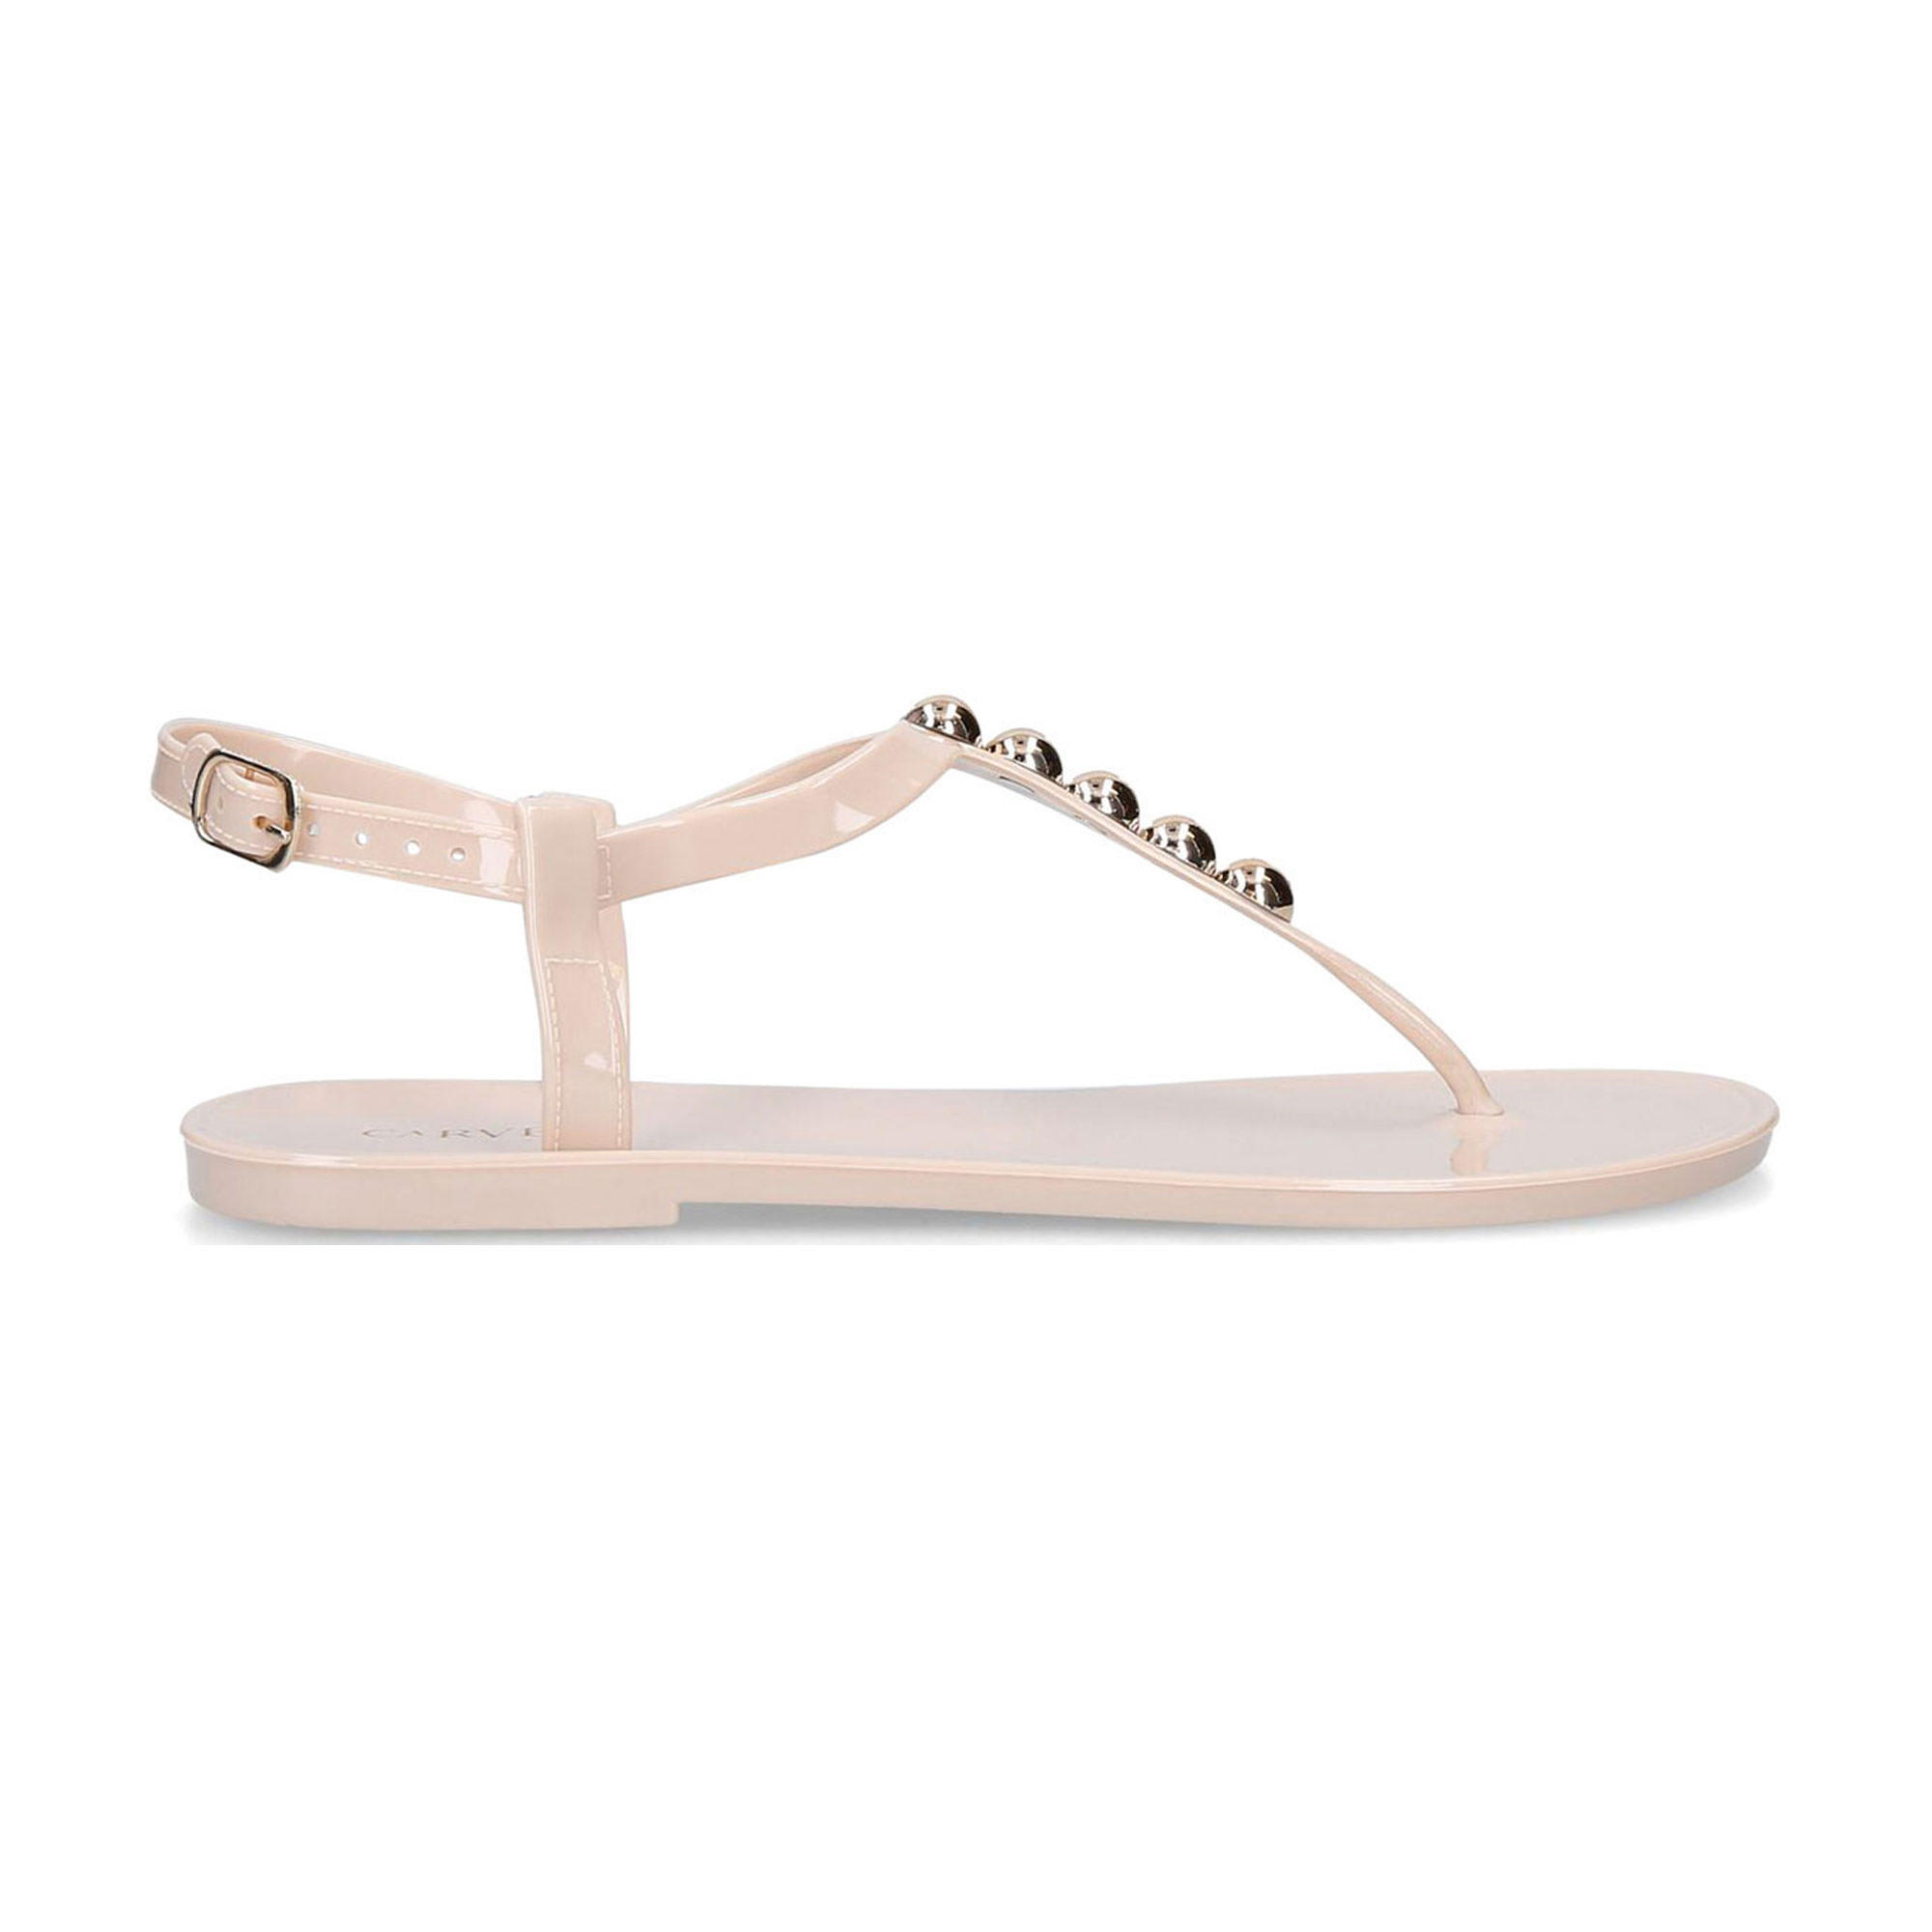 60002663324979NEUTRAL: Bora Sandal